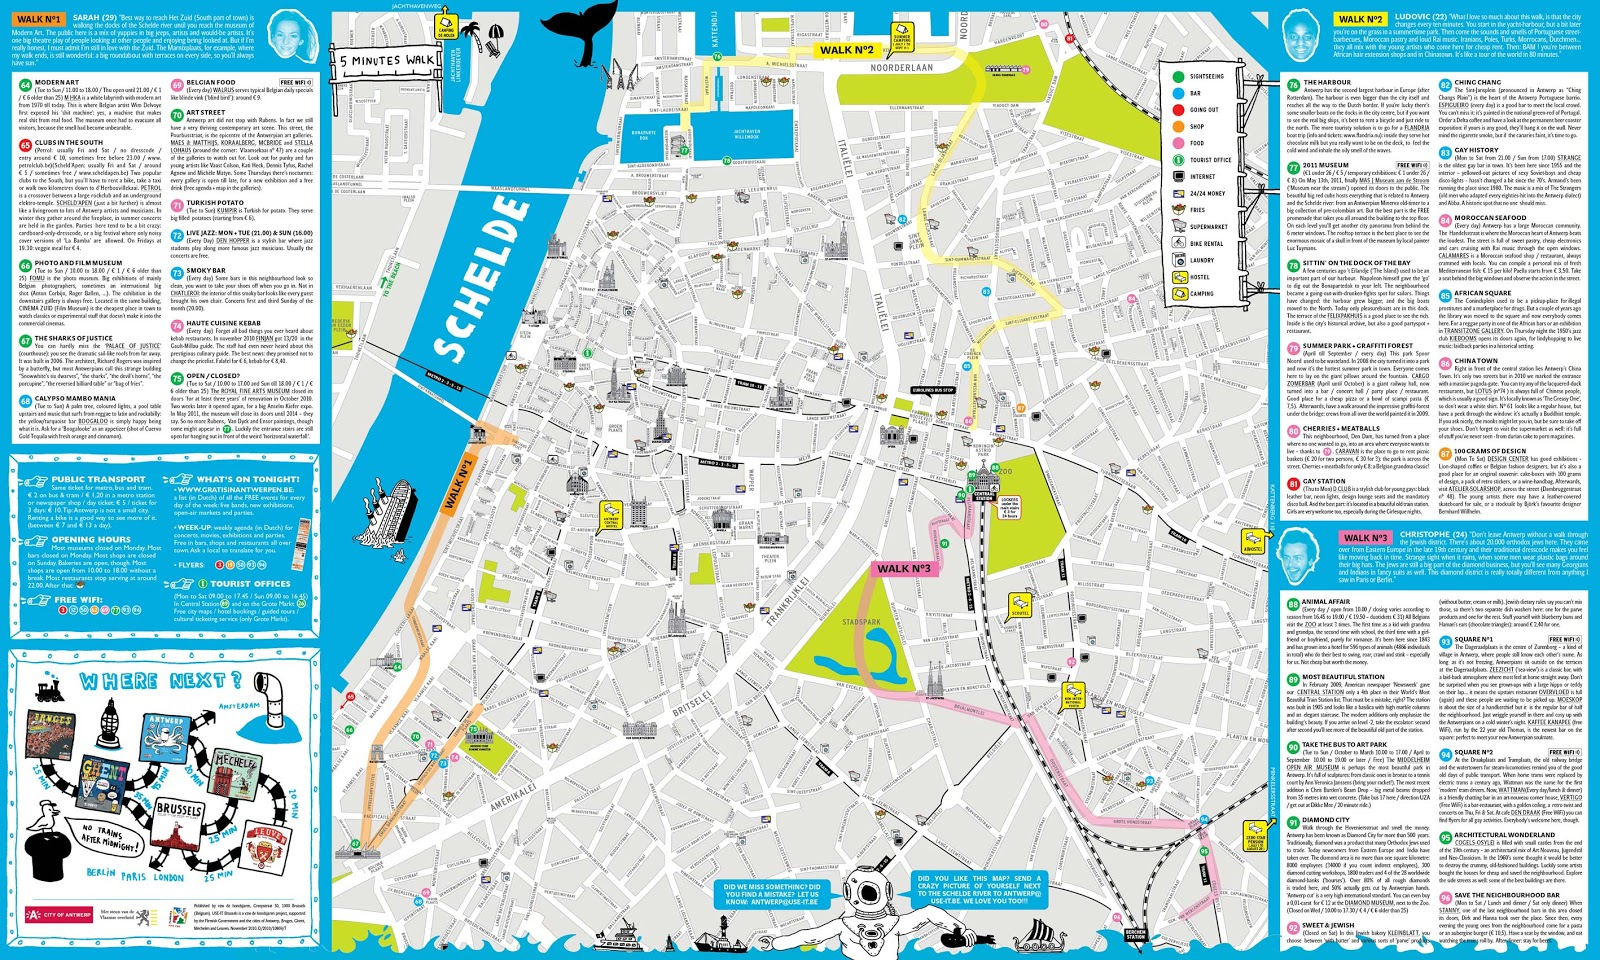 Brussels map detailed city and metro maps of brussels for download antwerp belgium world map belgium map hd pdf gumiabroncs Choice Image